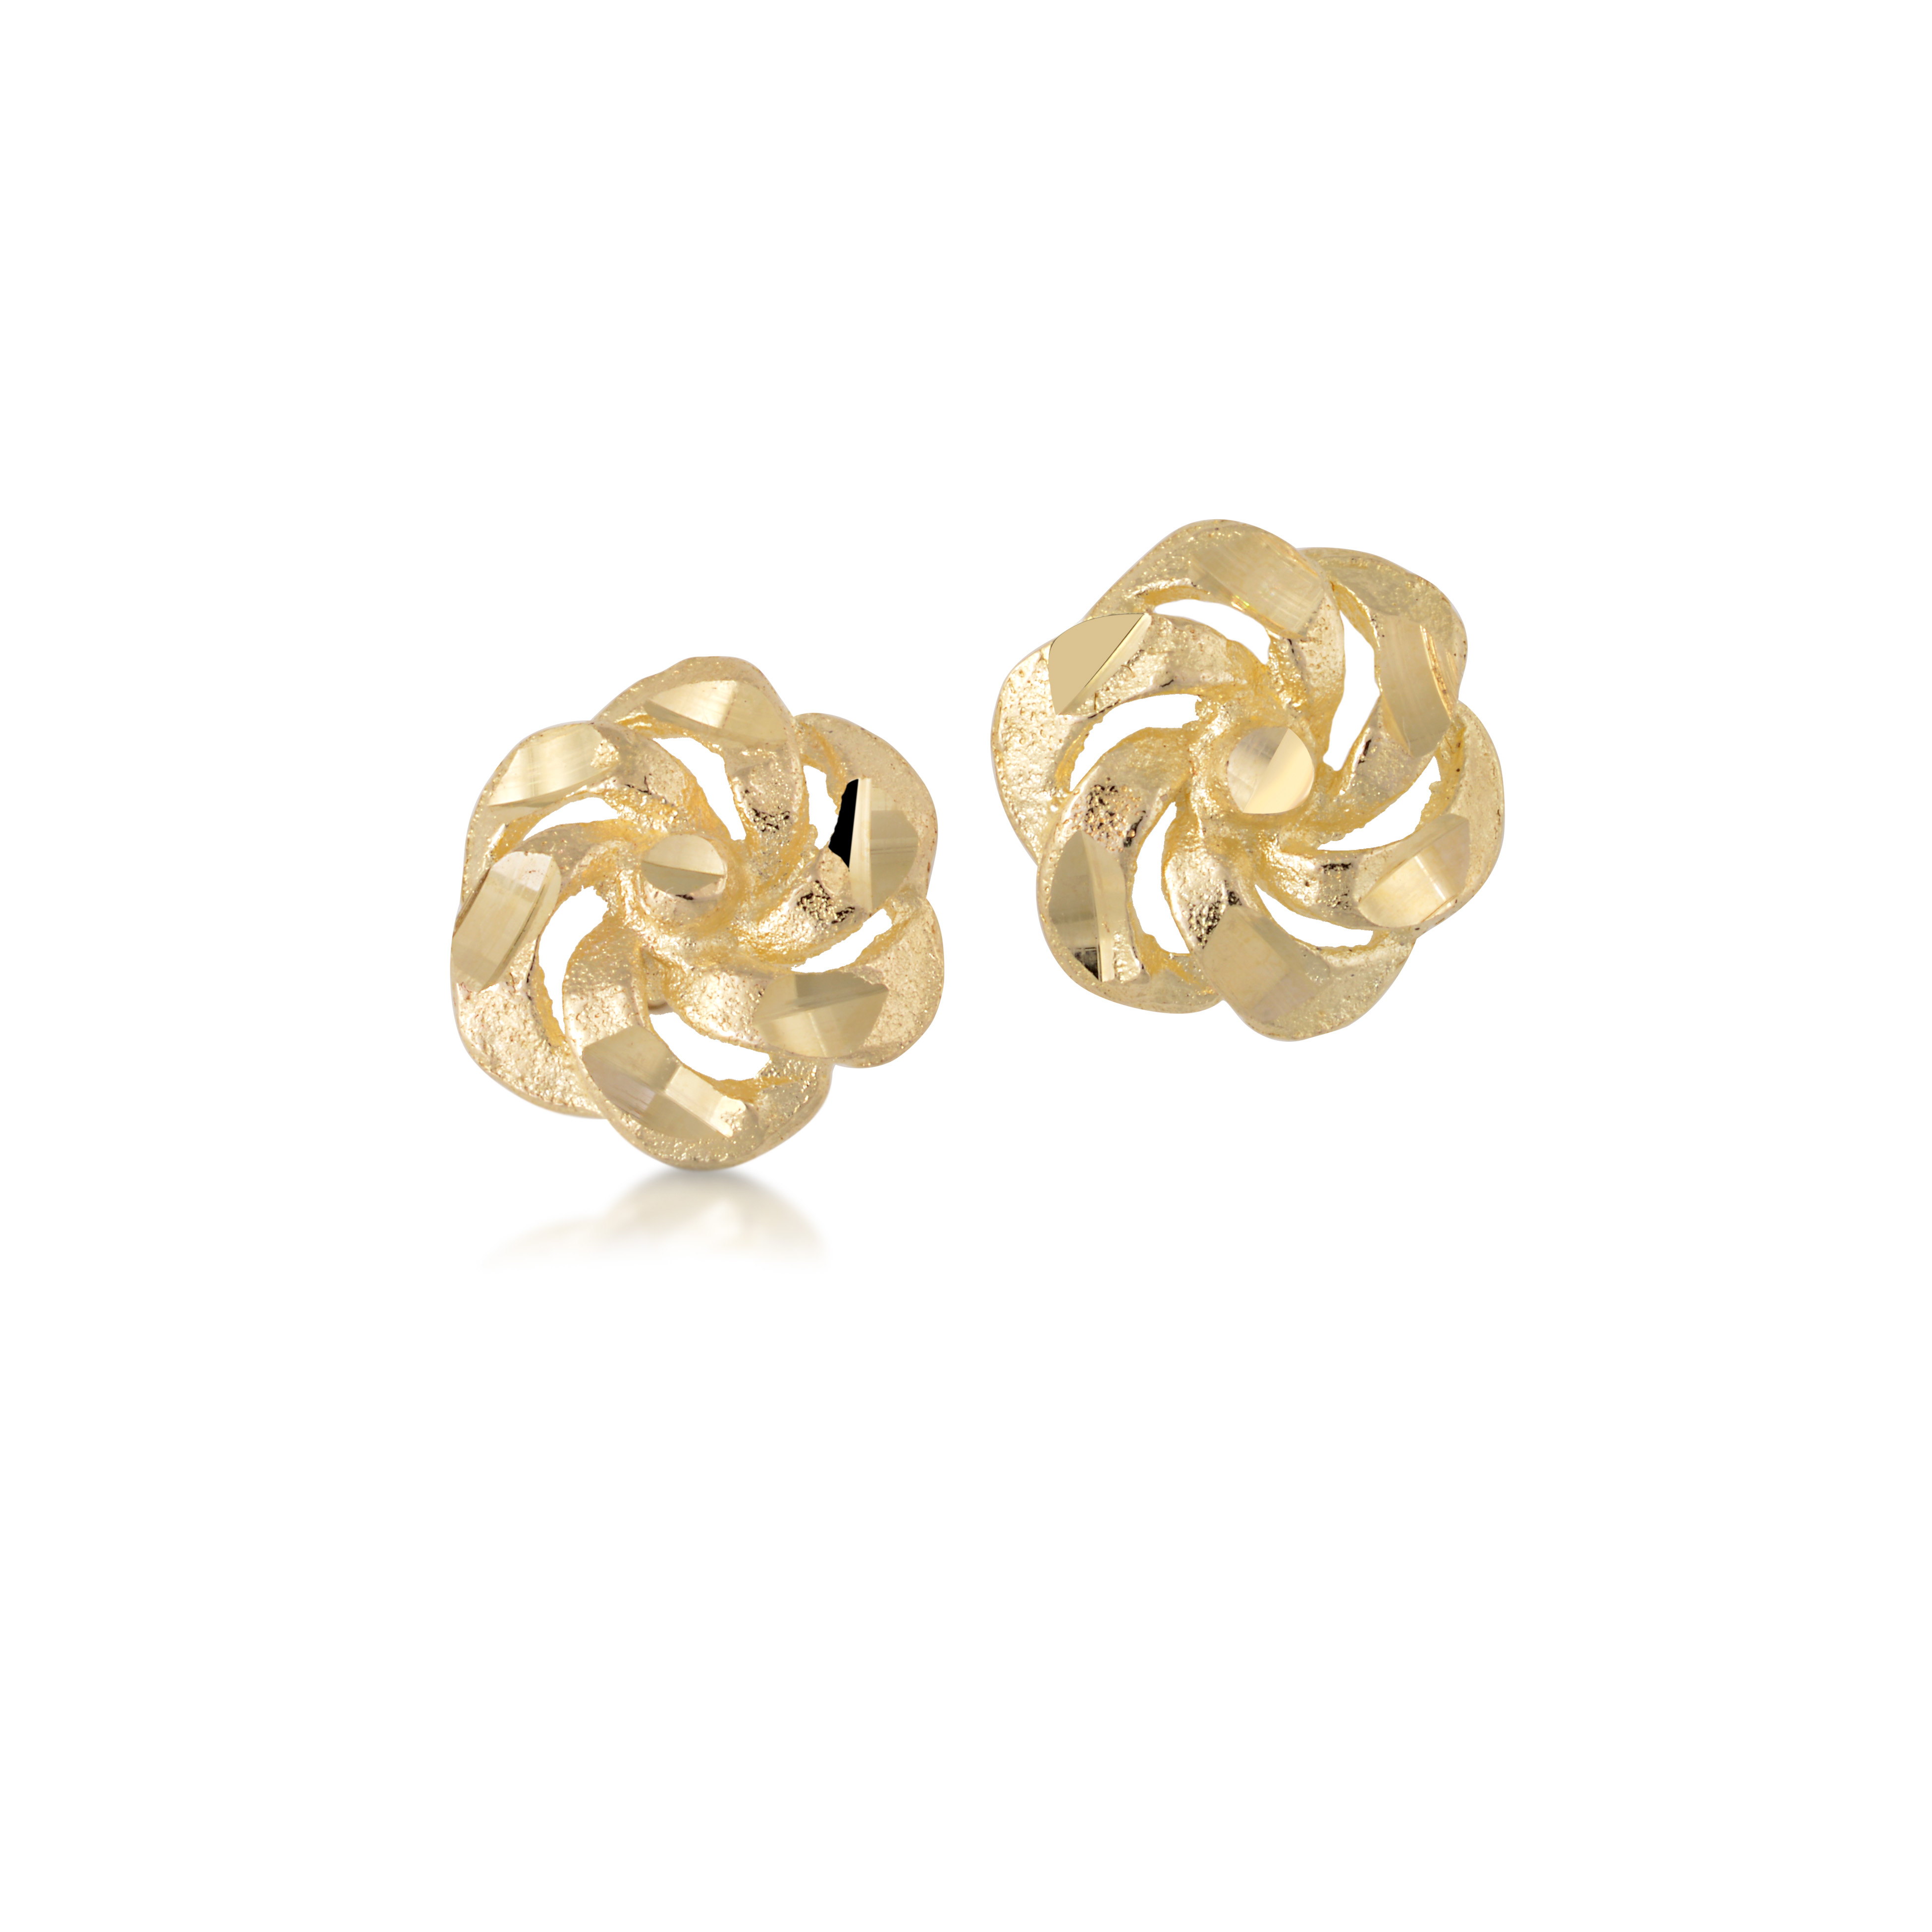 Flower stud earrings with a polished and crystal cut finish - 10K yellow Gold